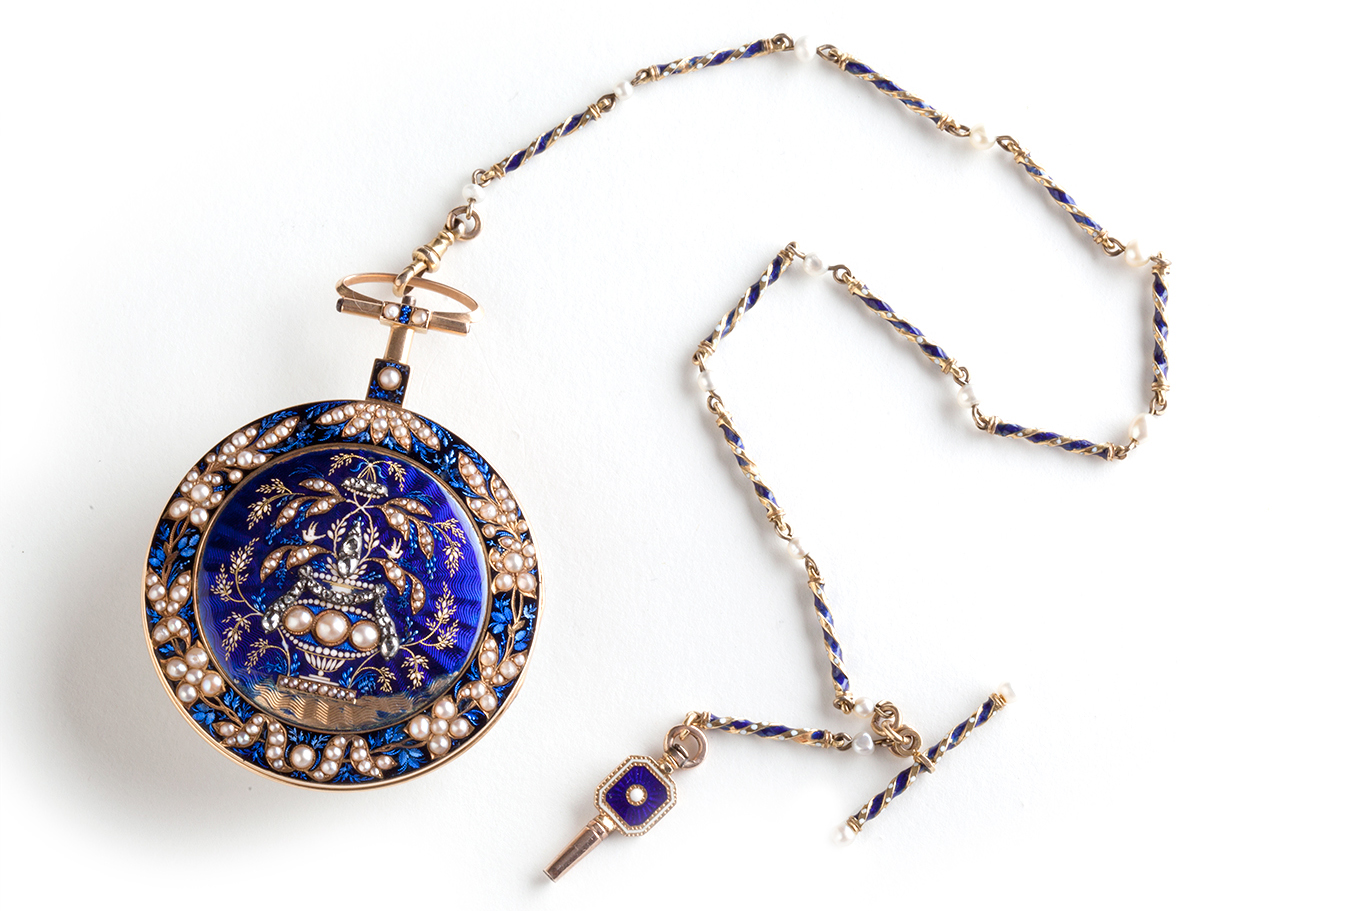 Ornately decorated blue pocket watch on a chain.